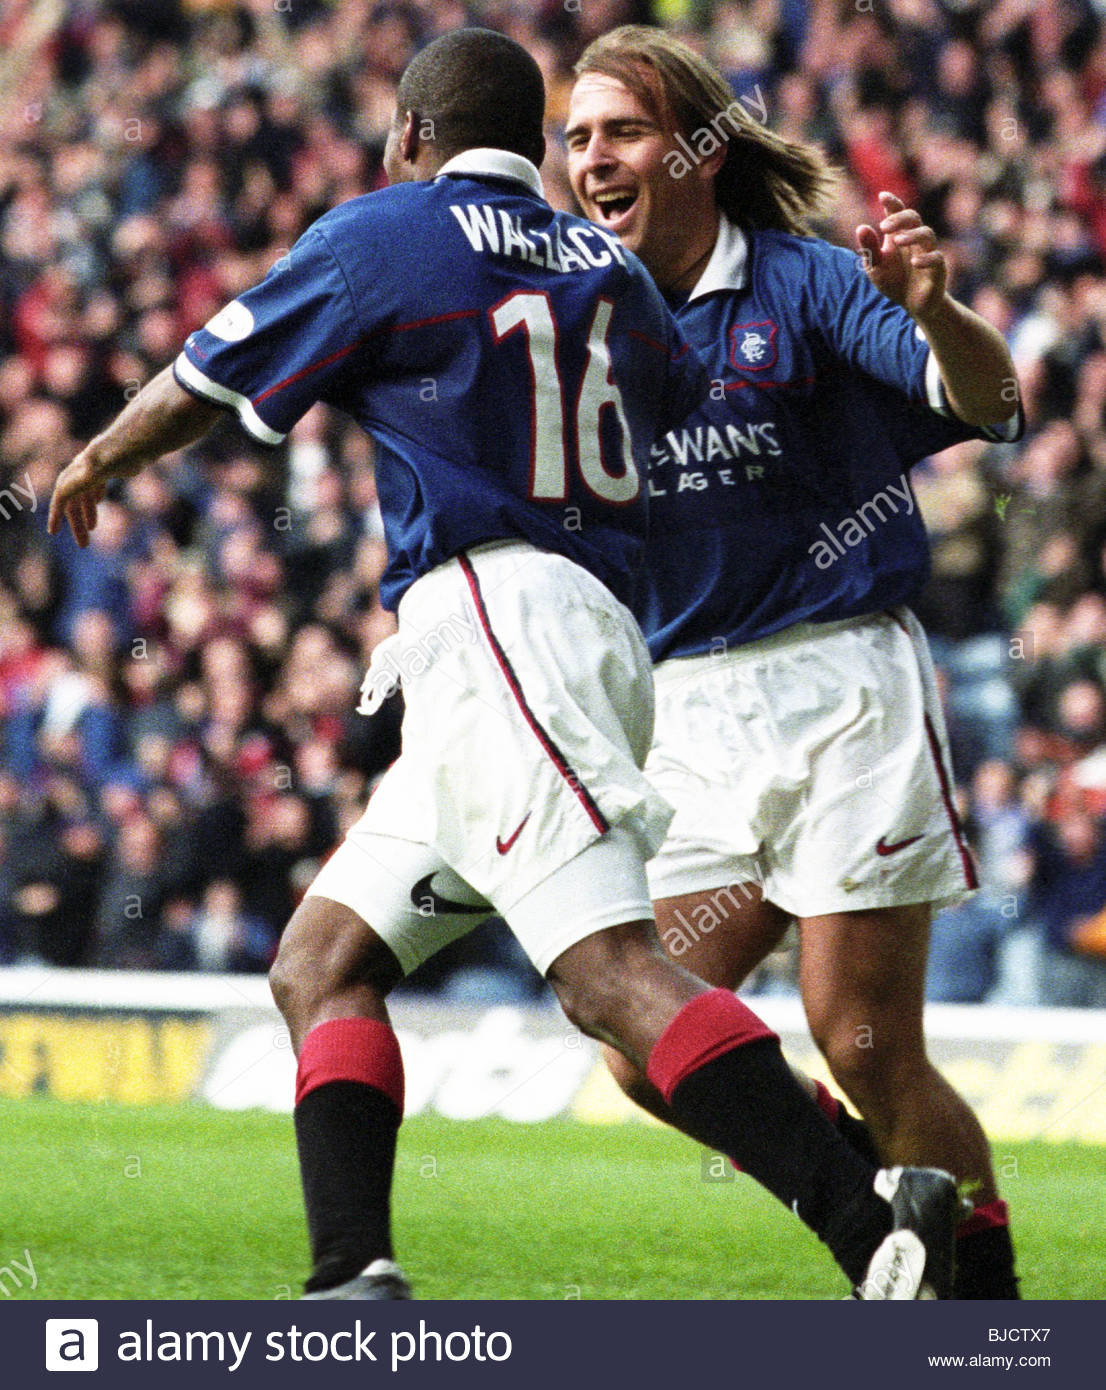 17/10/98 SPL RANGERS v HEARTS IBROX - GLASGOW Rangers' Rod Wallace celebrates his goal with team-mate Sebastian - Stock Image